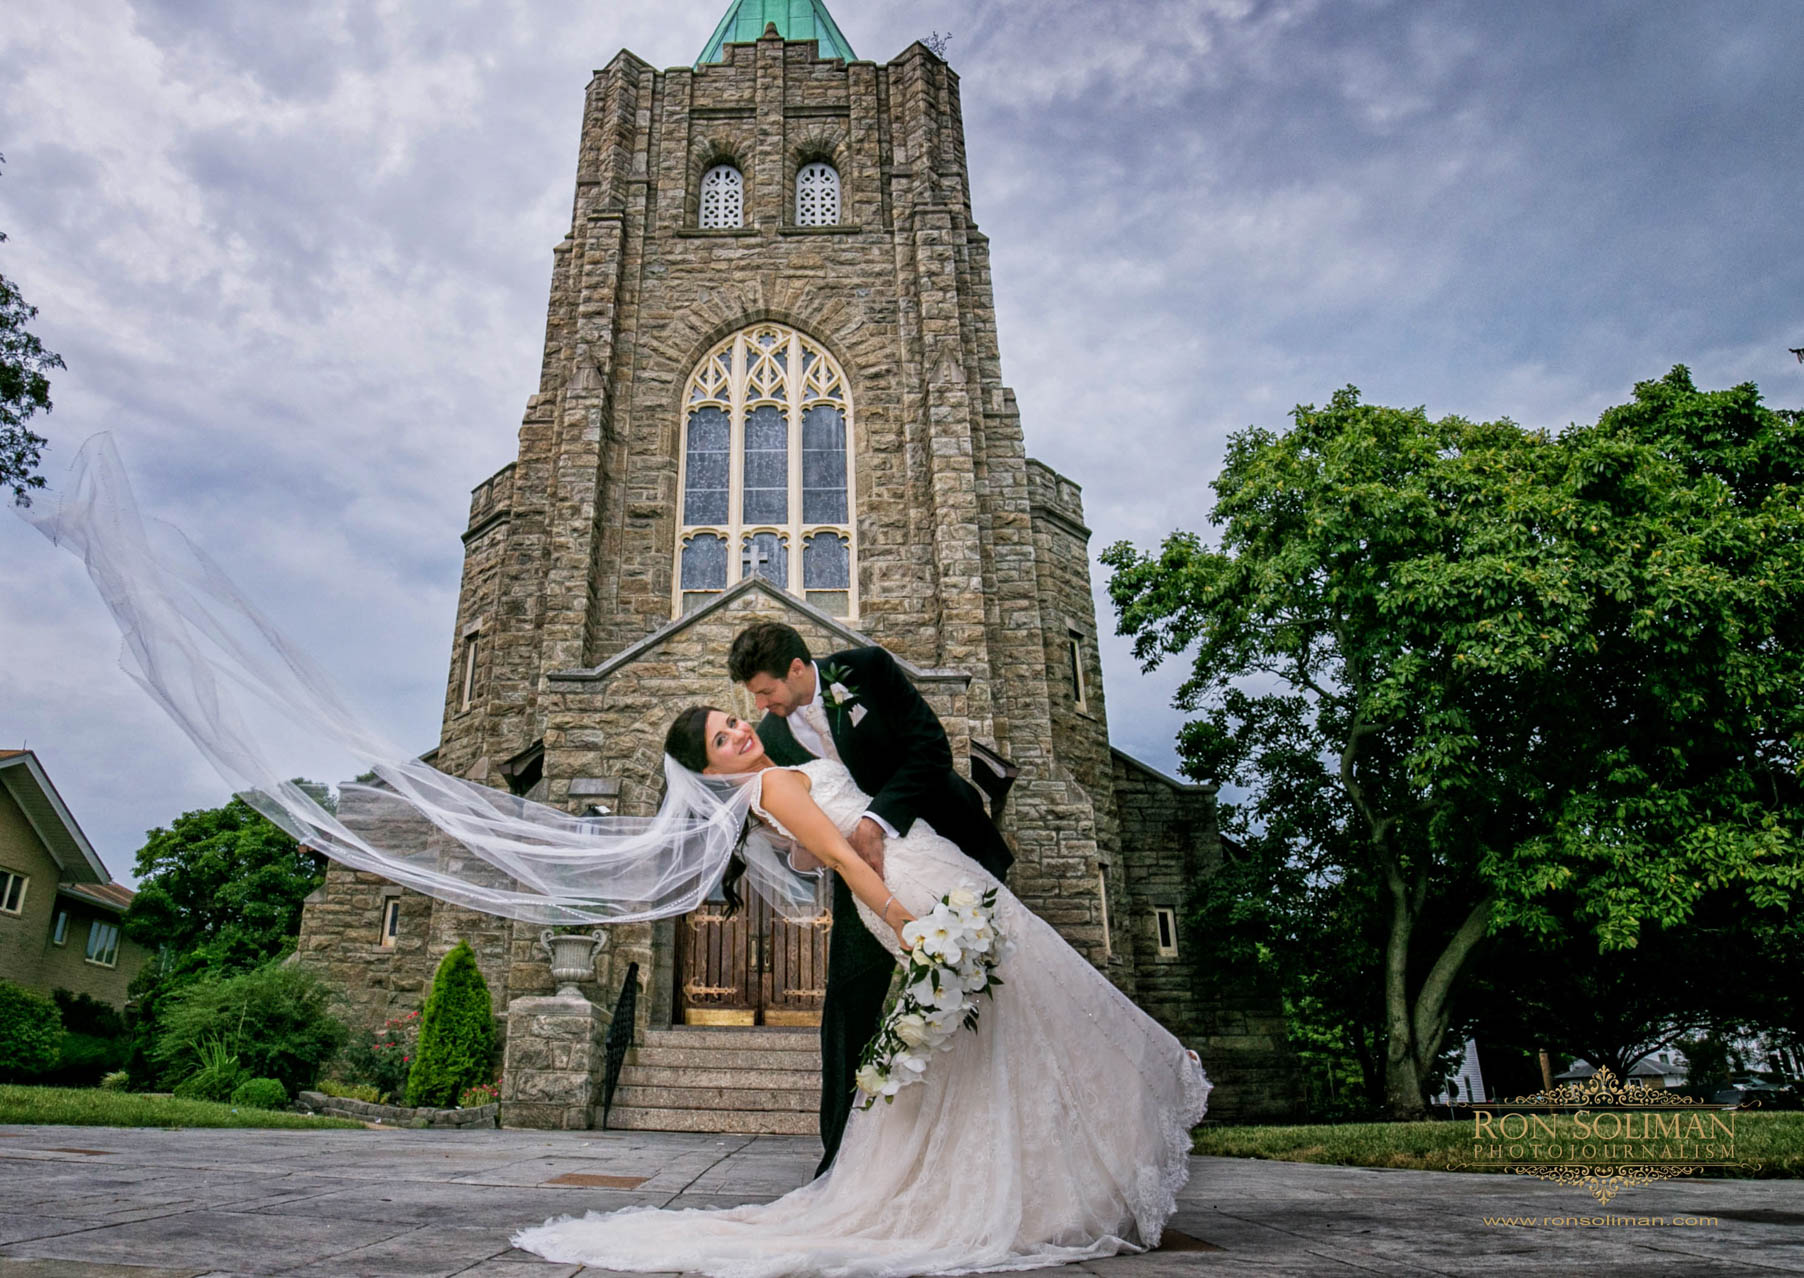 THE MERION WEDDING